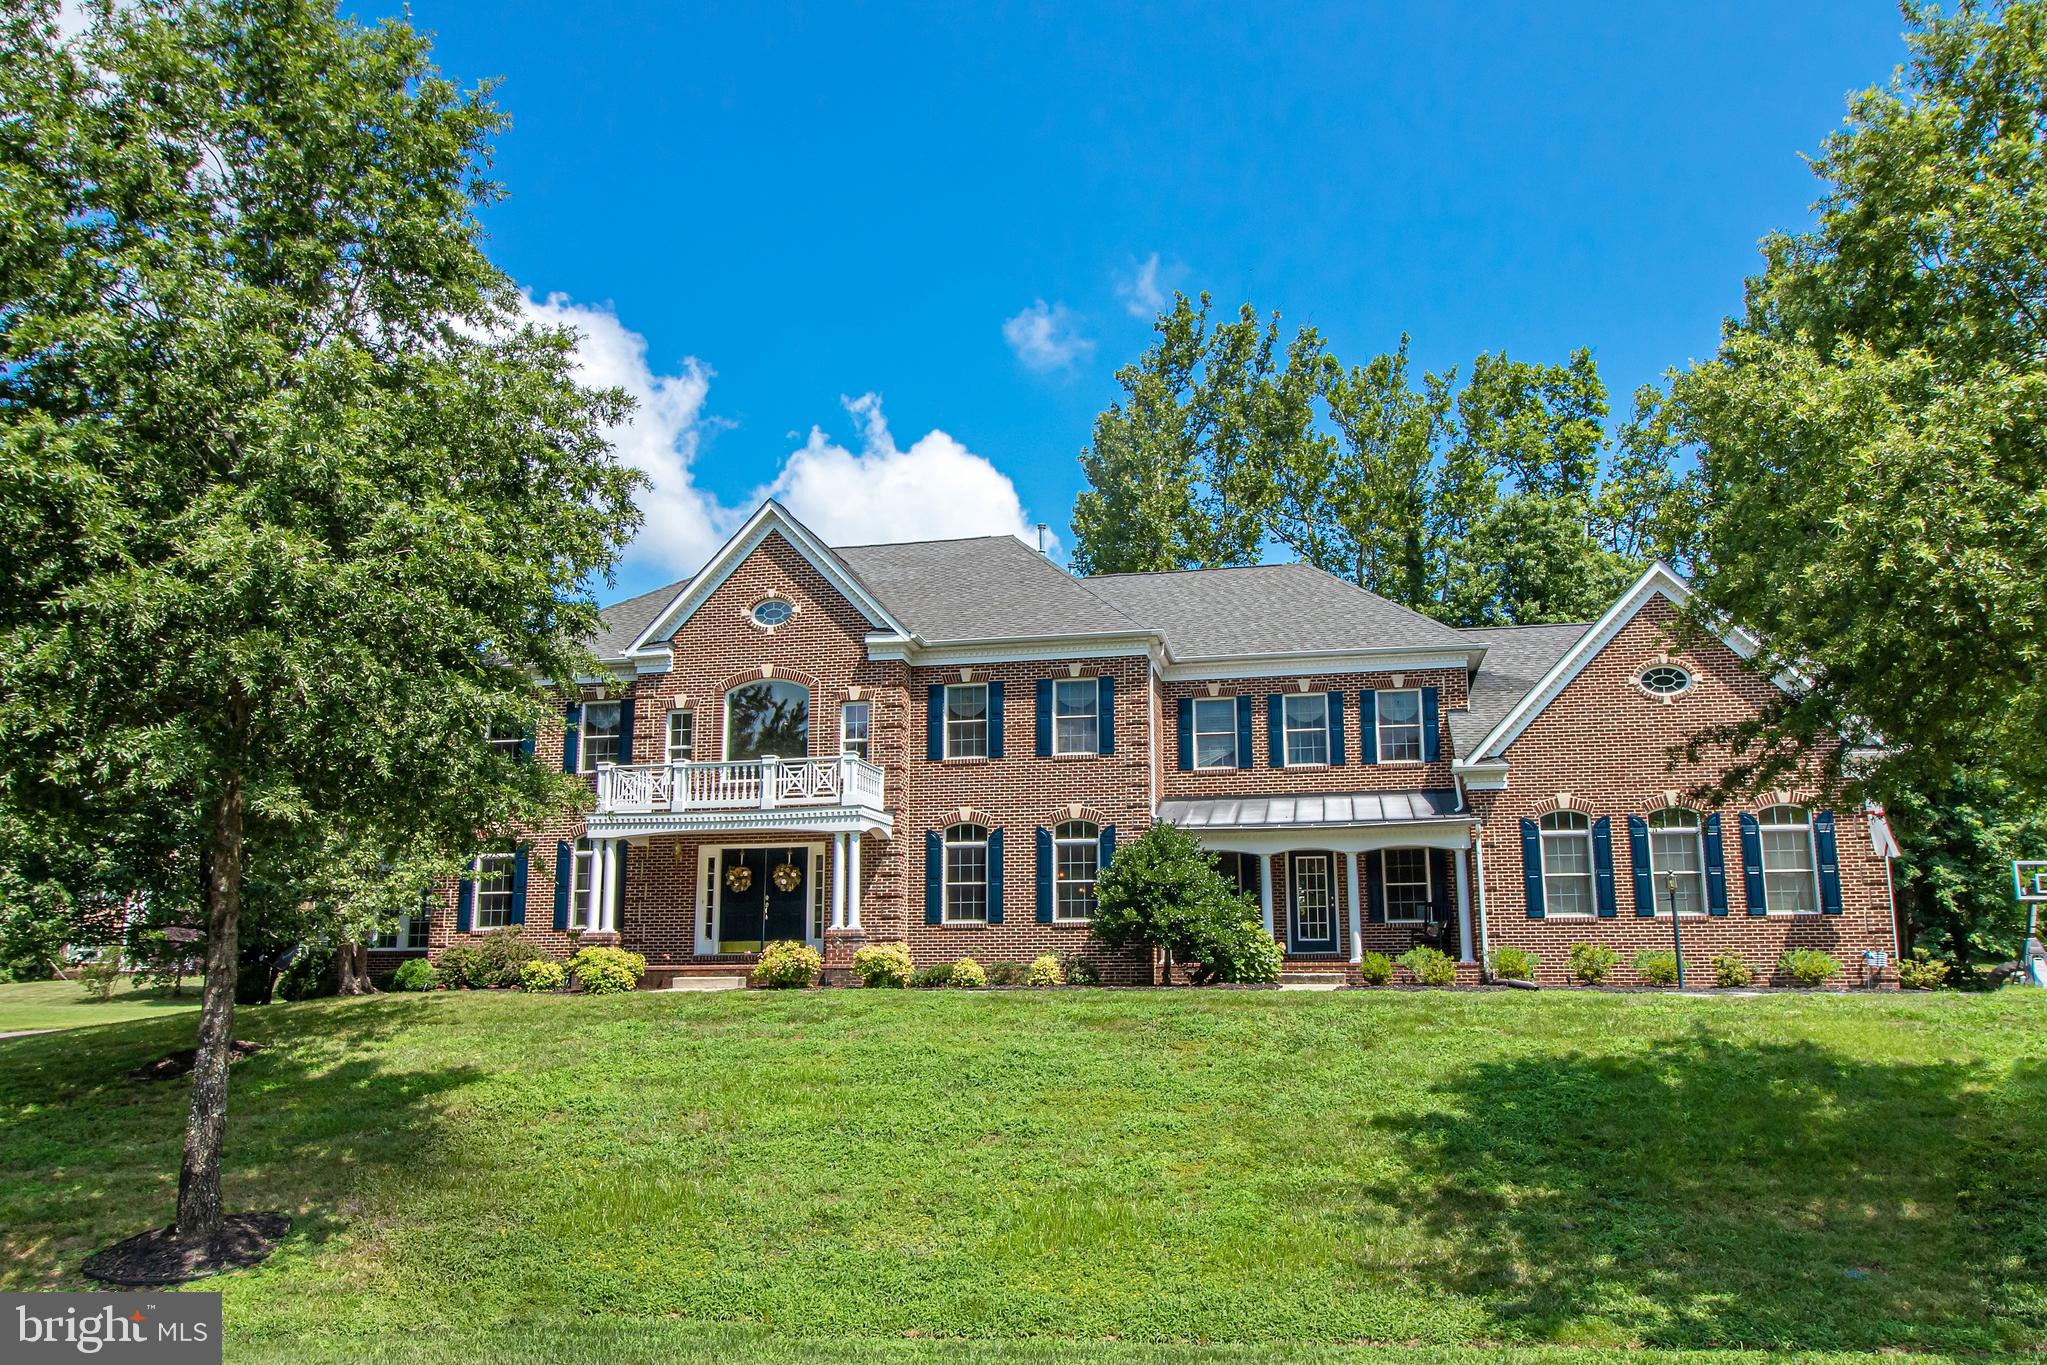 14322 Driftwood Road, Bowie, MD 20721